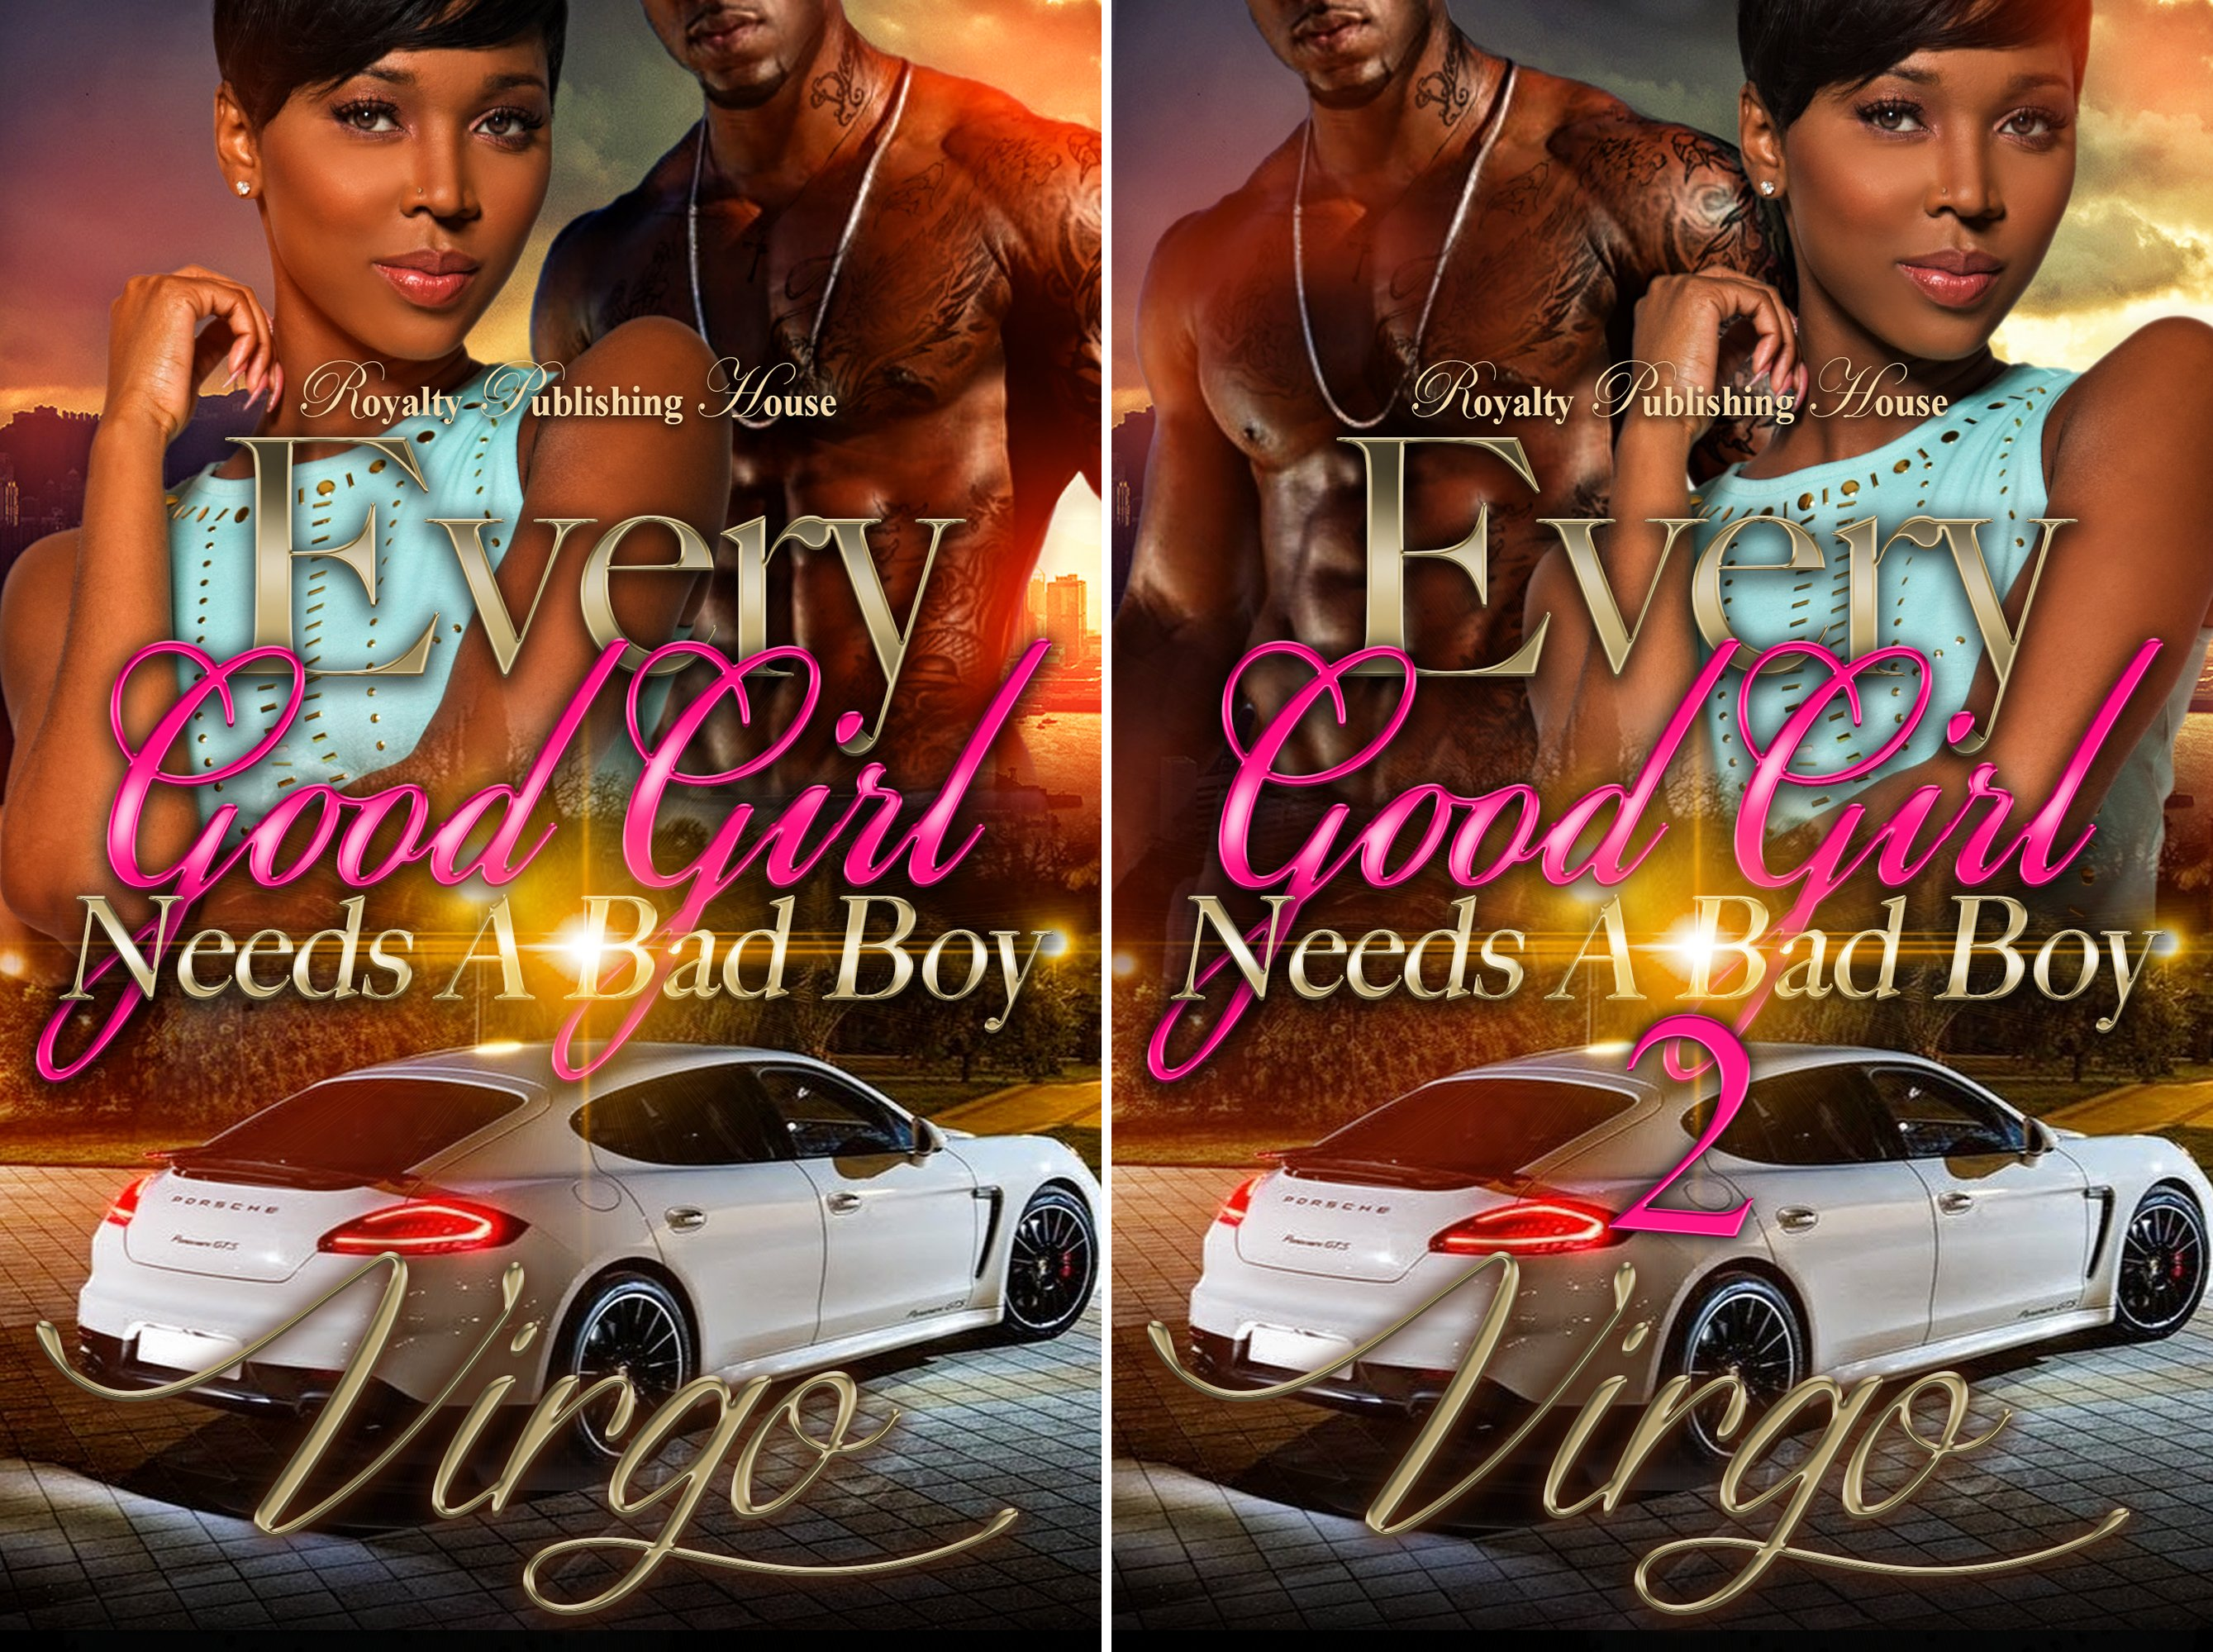 Every Good Girl Needs a Bad Boy (2 Book Series)